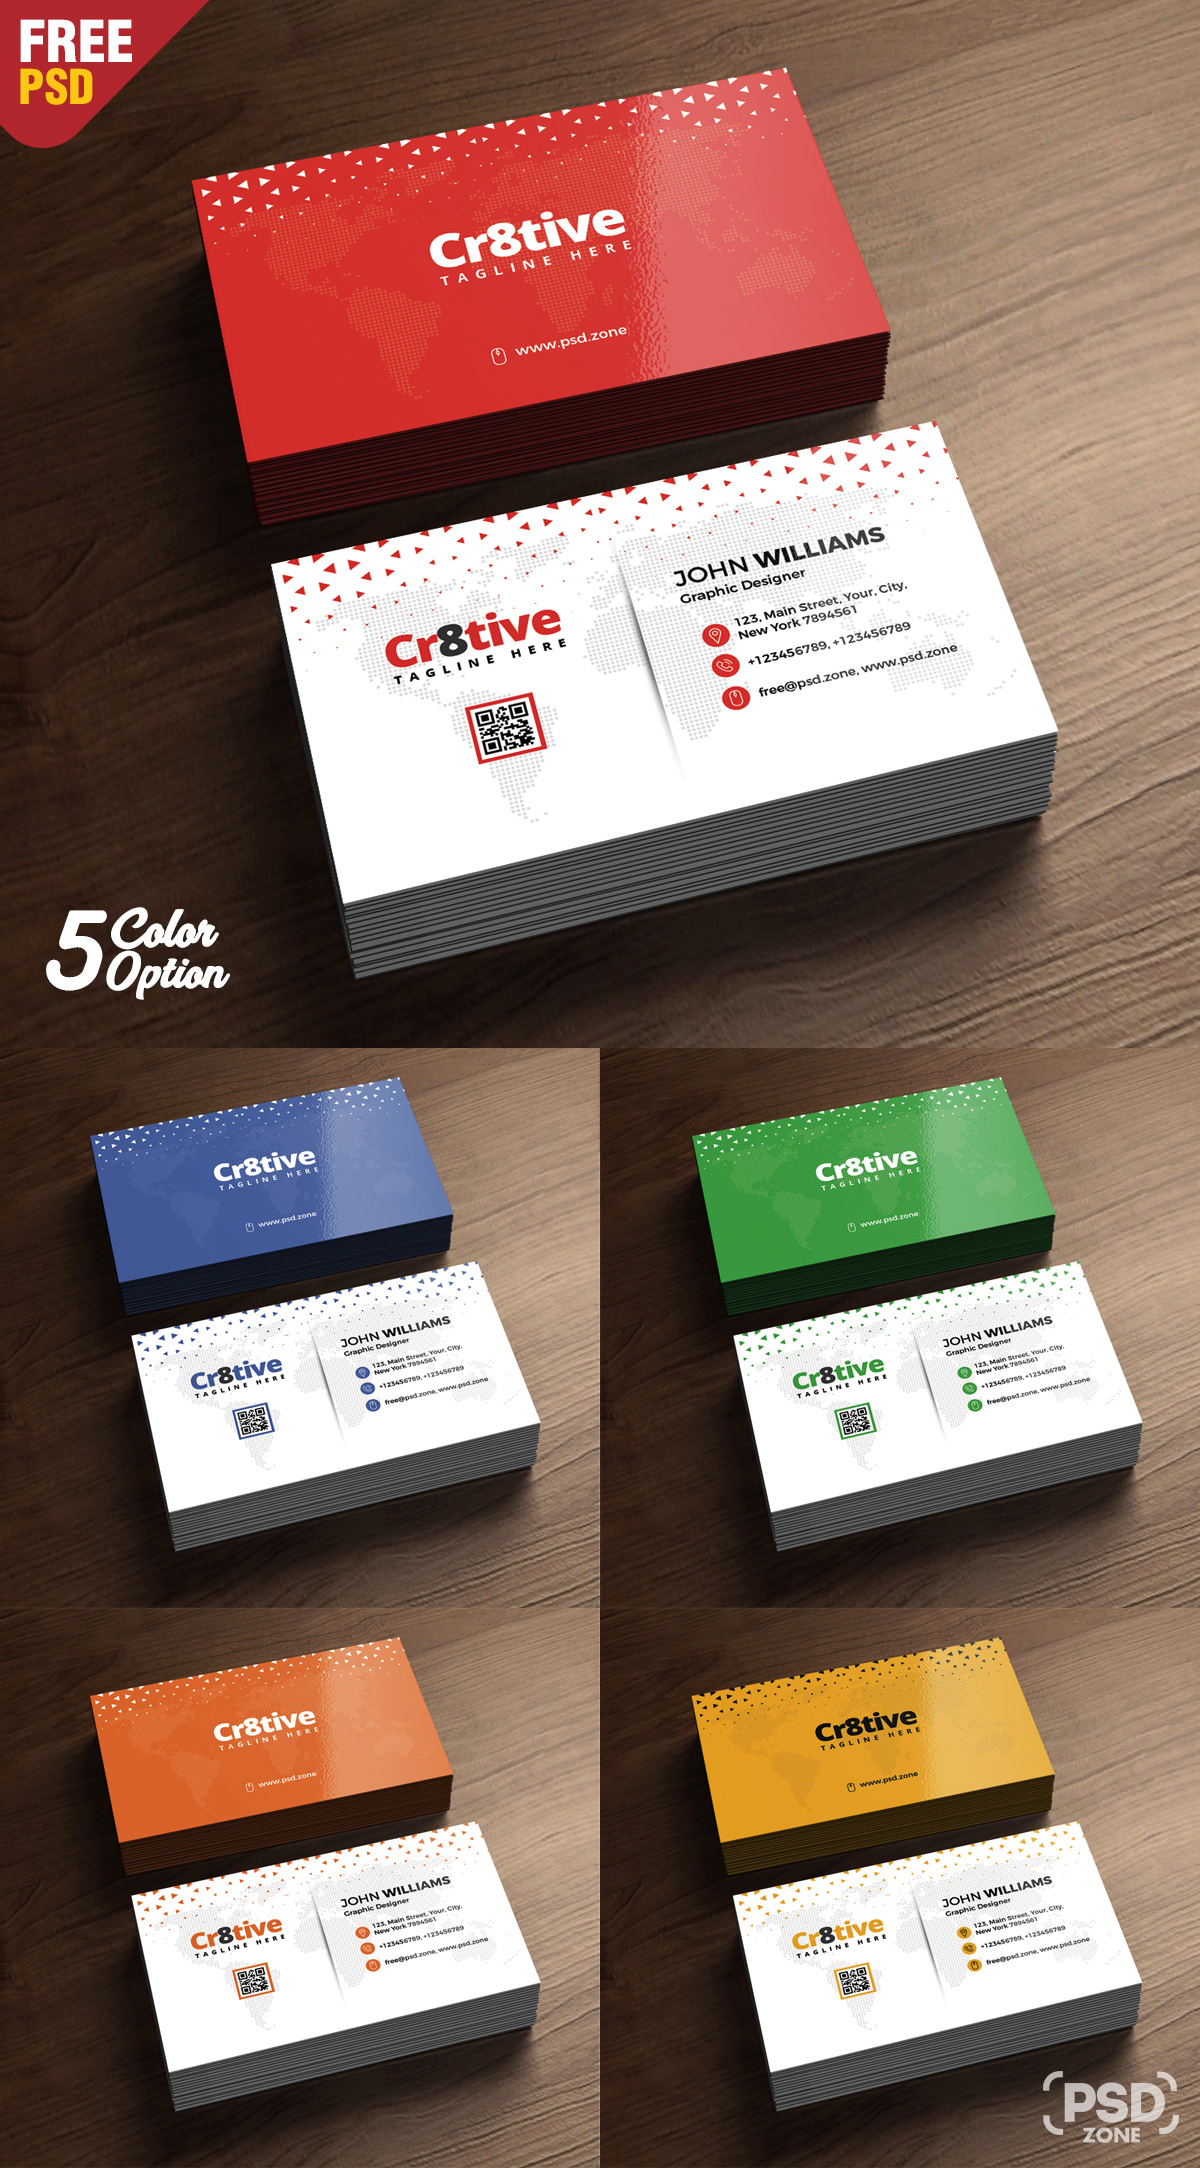 Clean Business Card Design Free PSD - PSD Zone